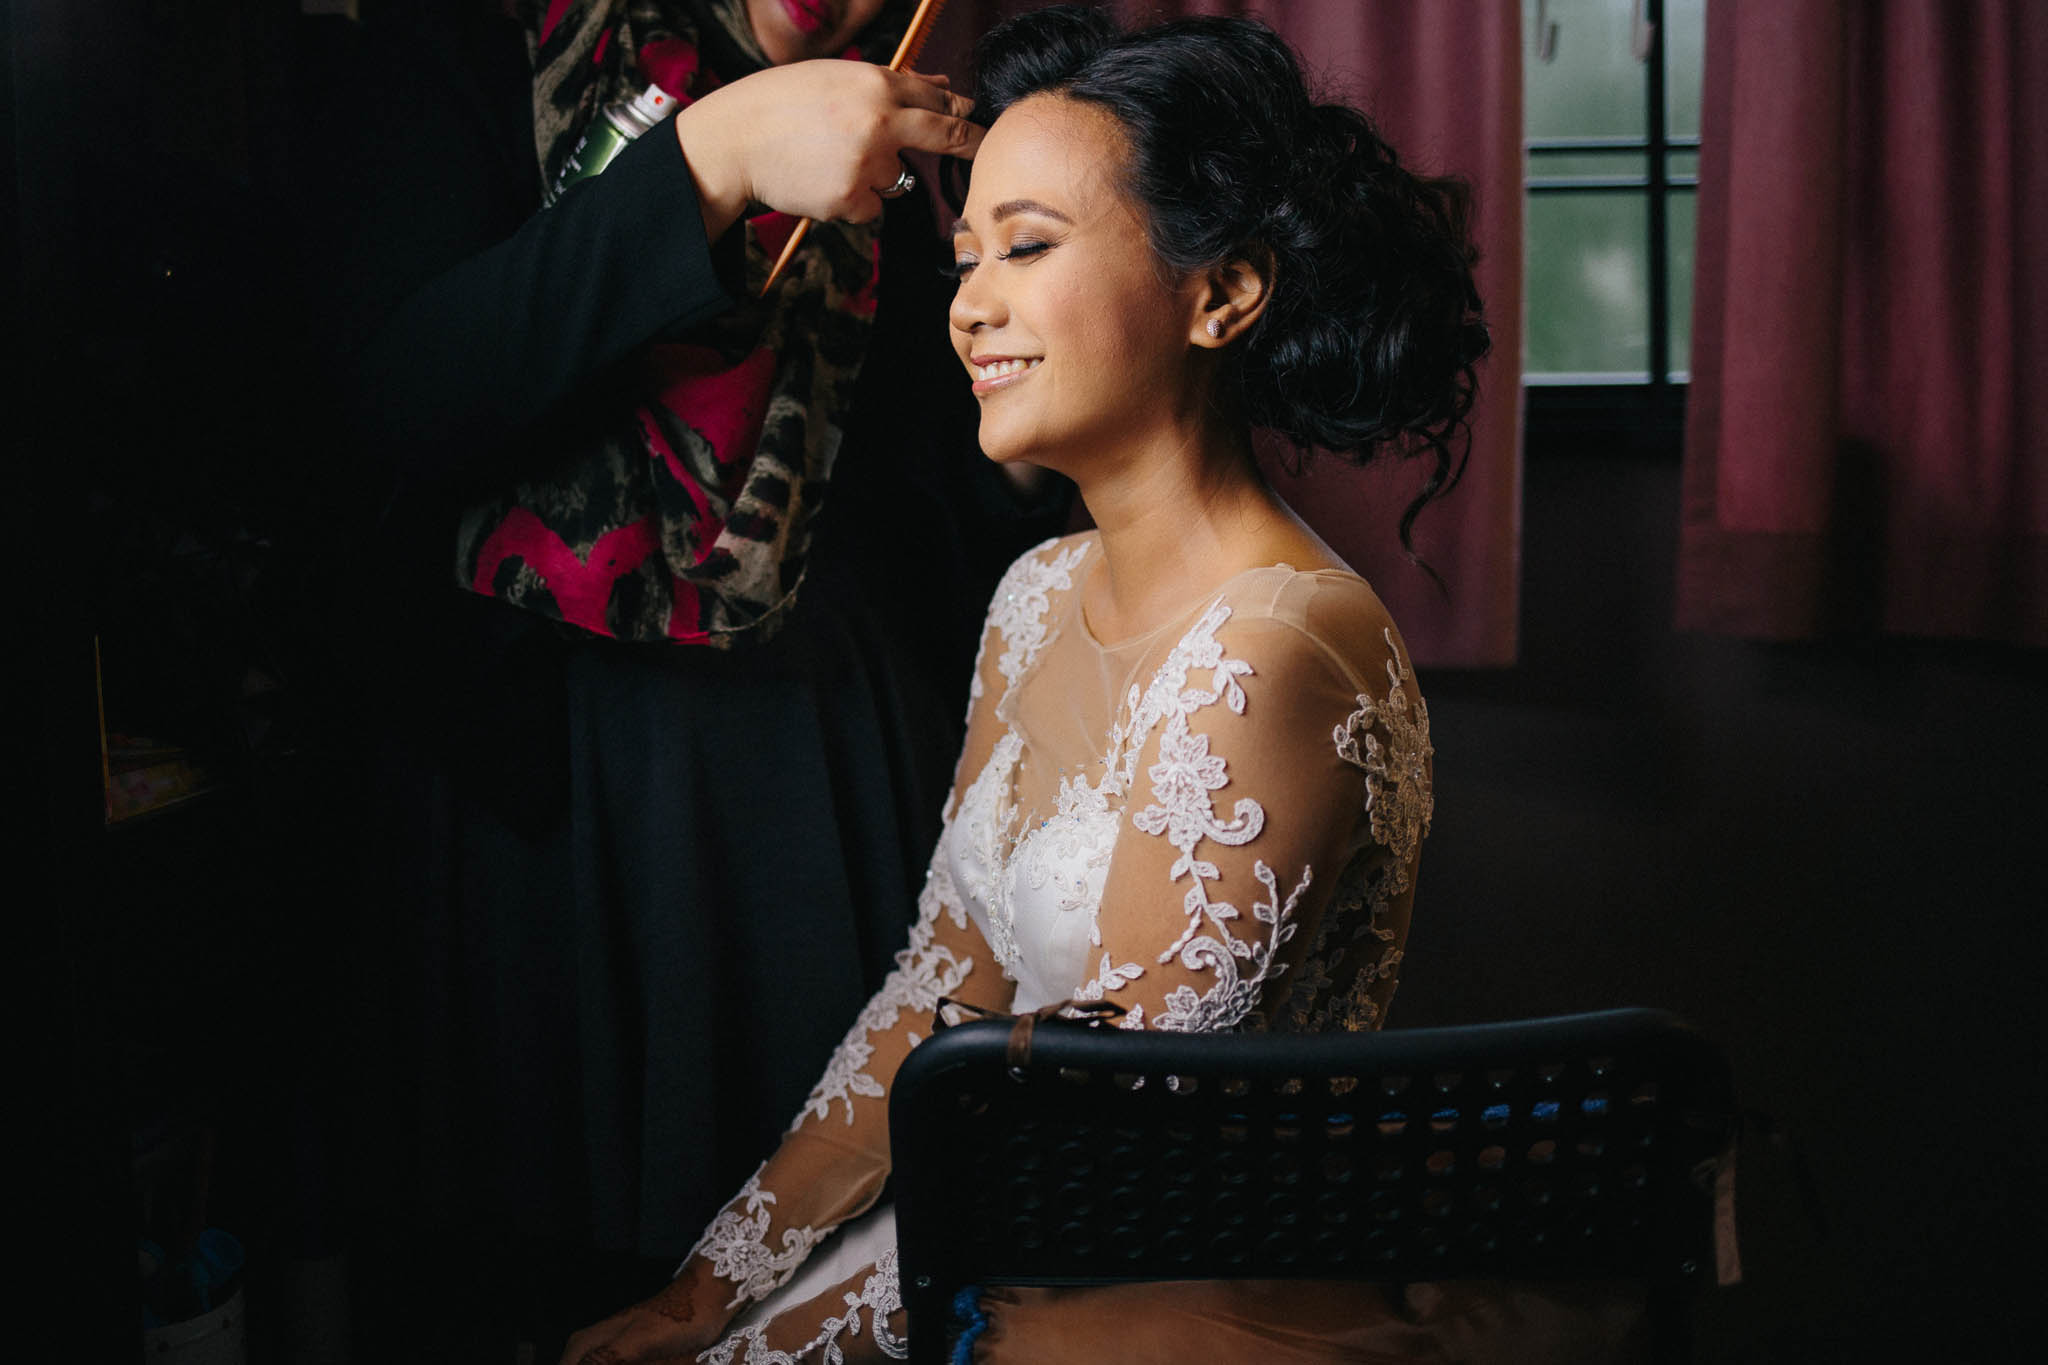 singapore-wedding-photographer-wedding-hafiana-teck-kuan-002.jpg